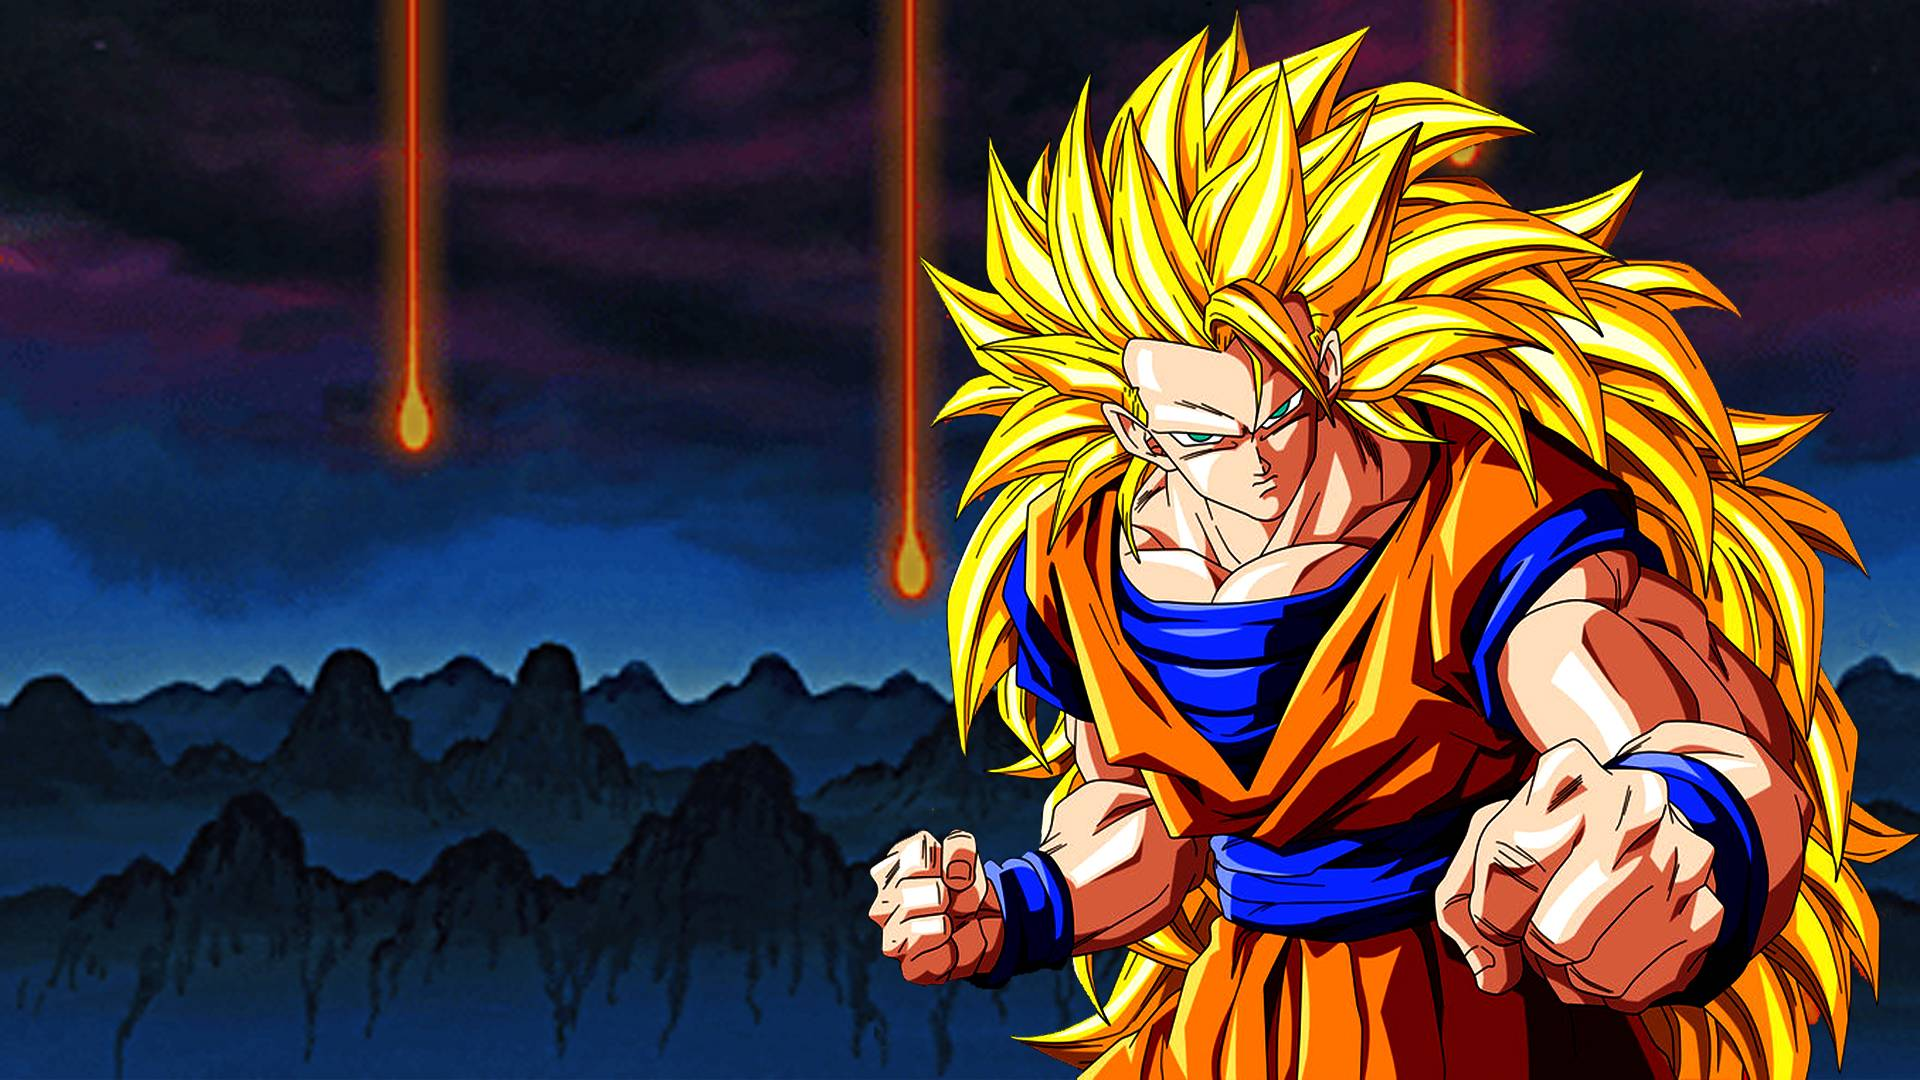 Dragon-Ball-Z-Find-best-latest-Dragon-Ball-Z-for-your-PC-desktop-background-wallpaper-wp3605199